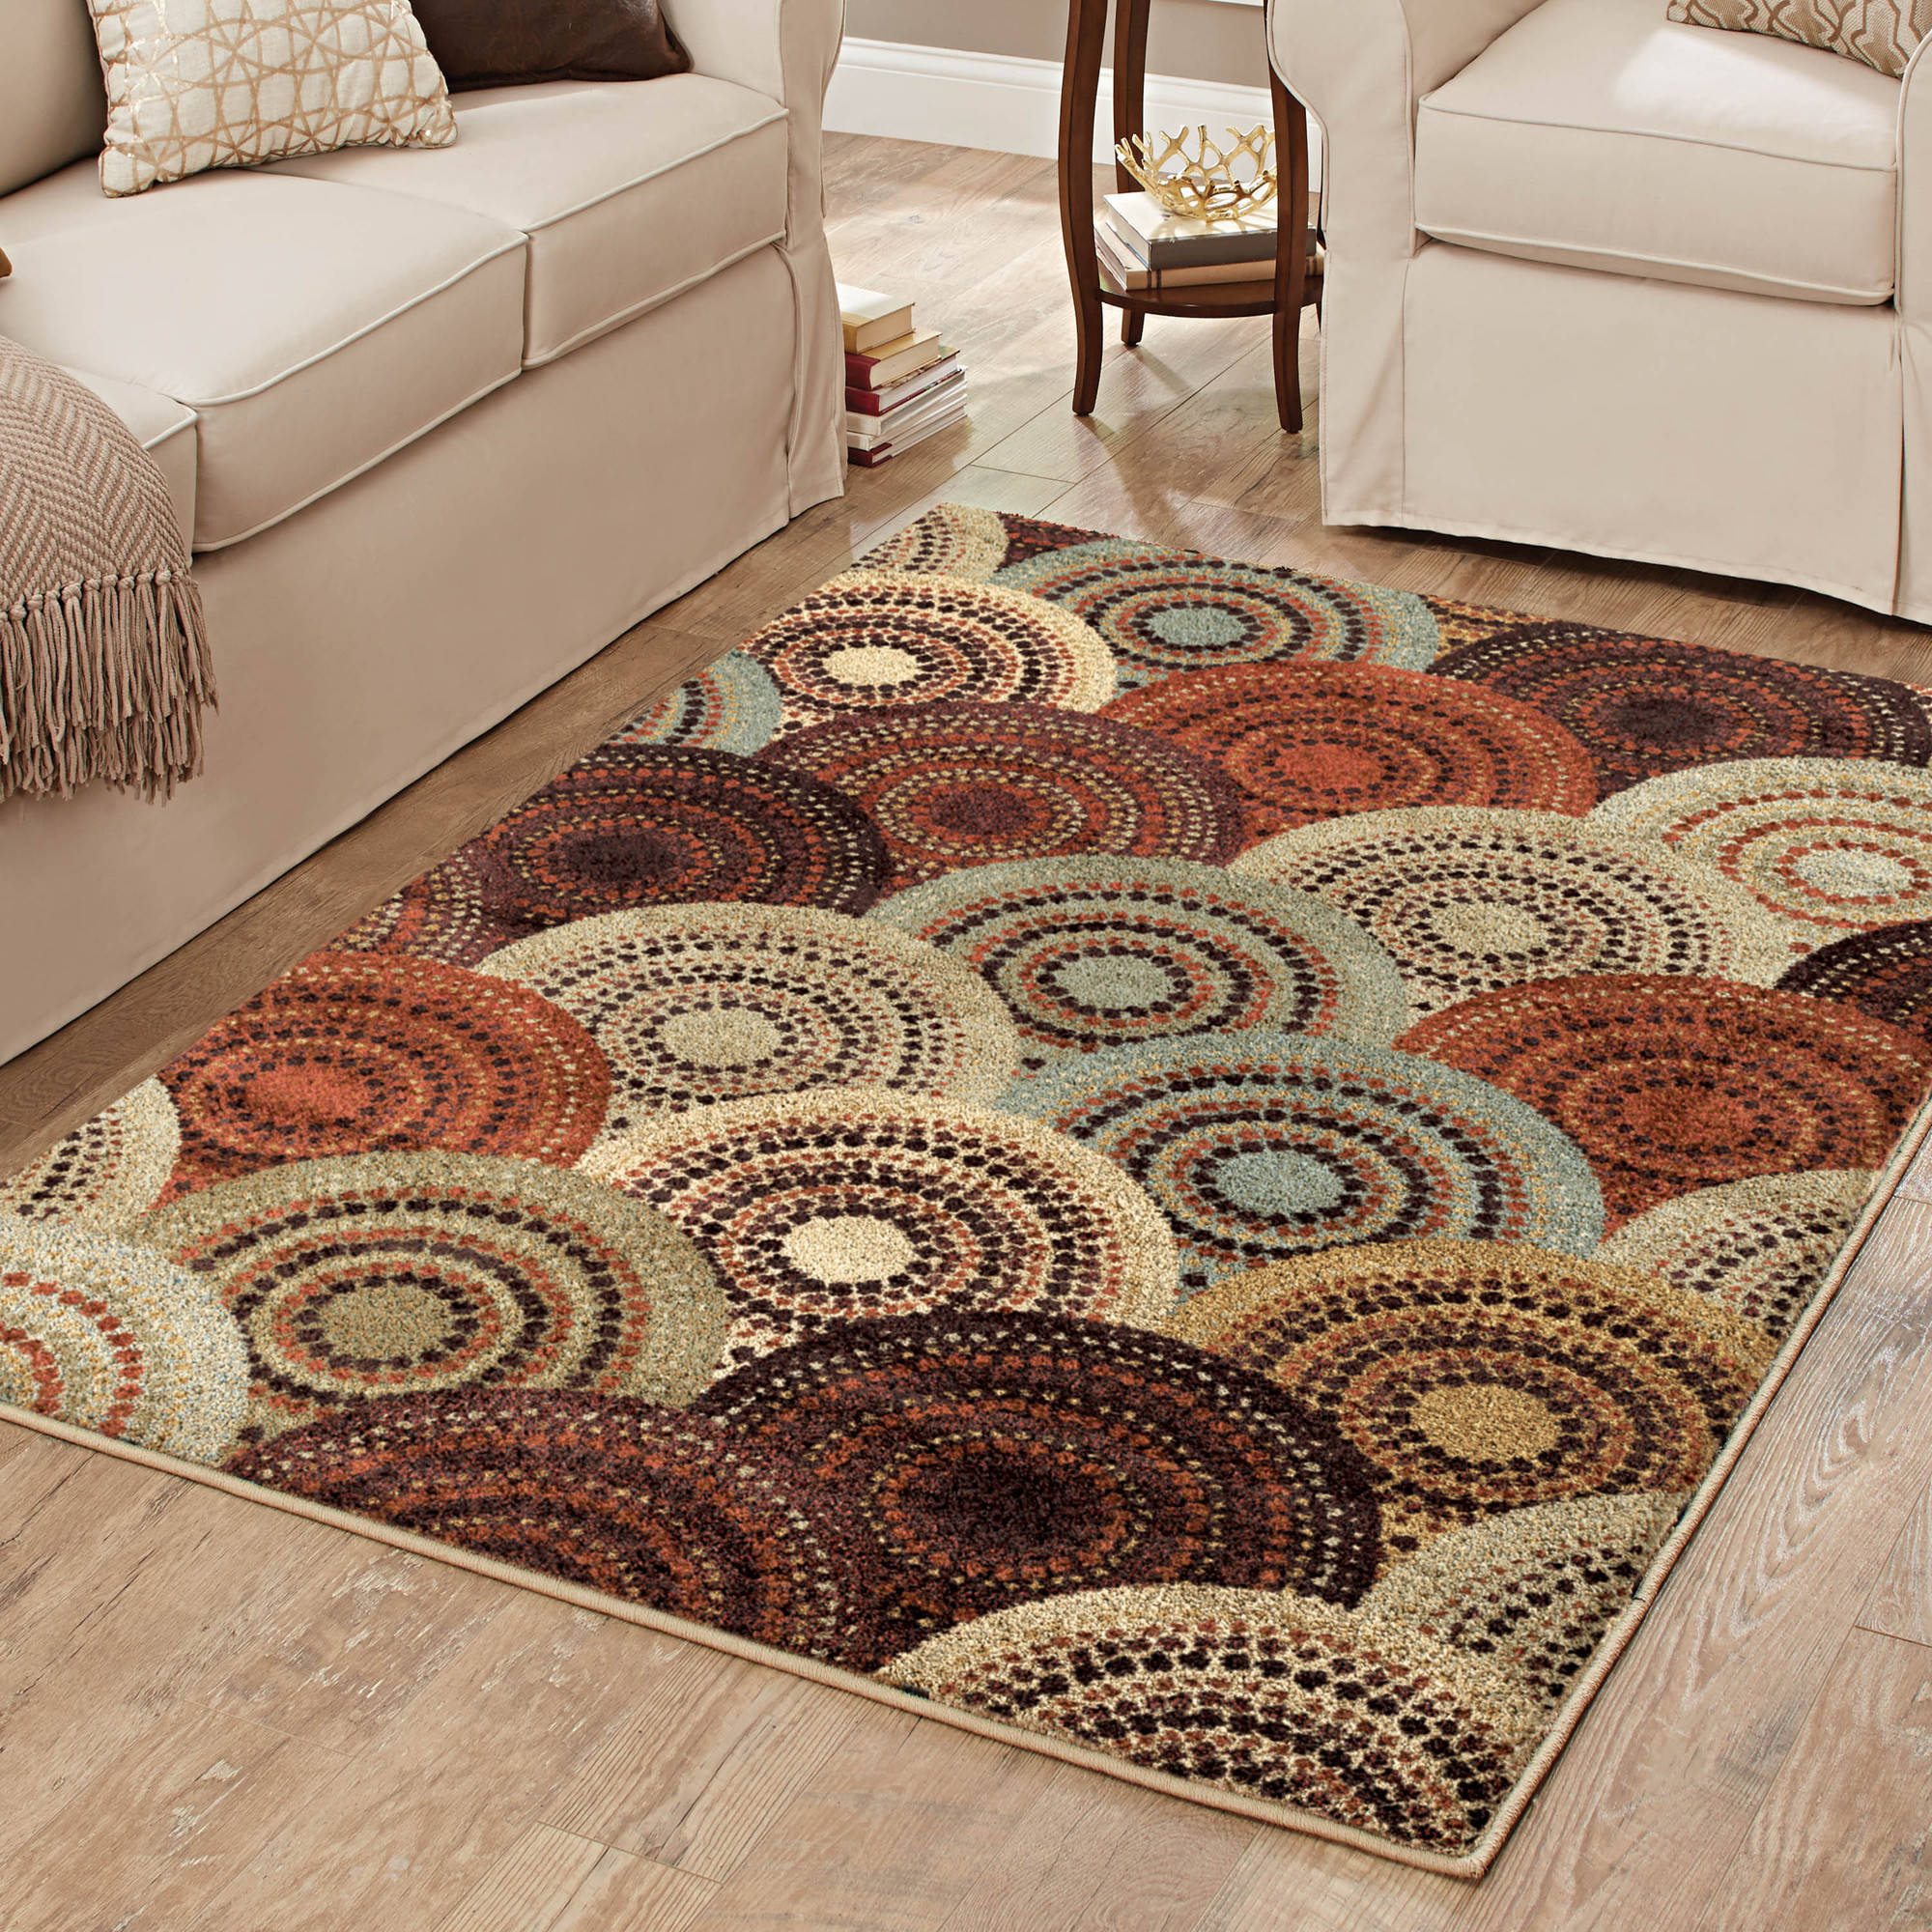 Better Homes And Gardens Area Rugs Roselawnlutheran